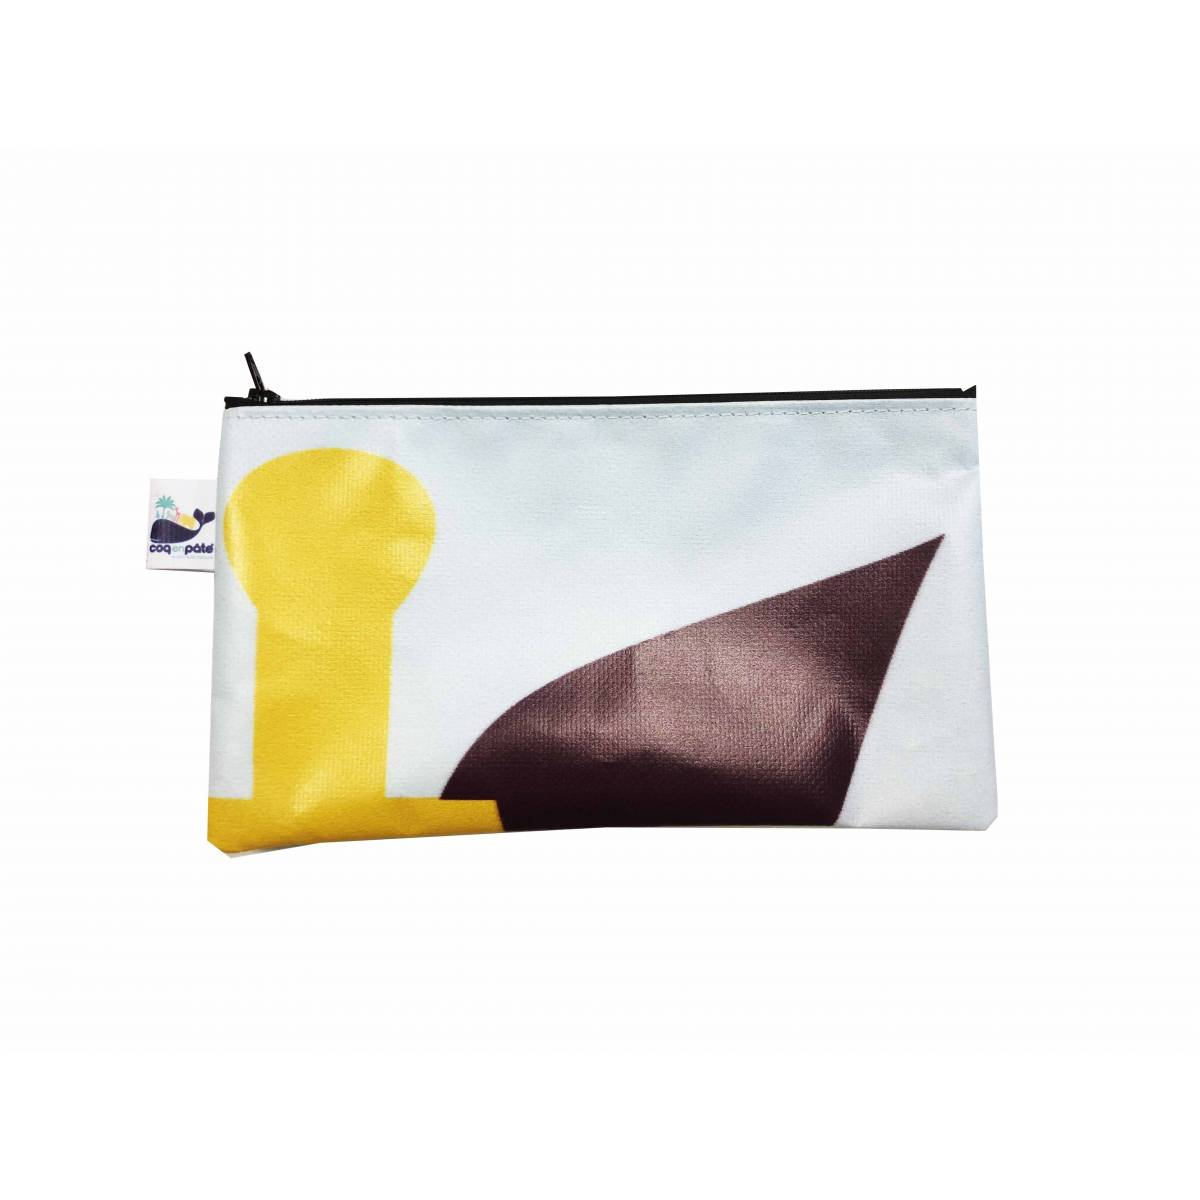 Pencil case - Limited Edition n°02/40